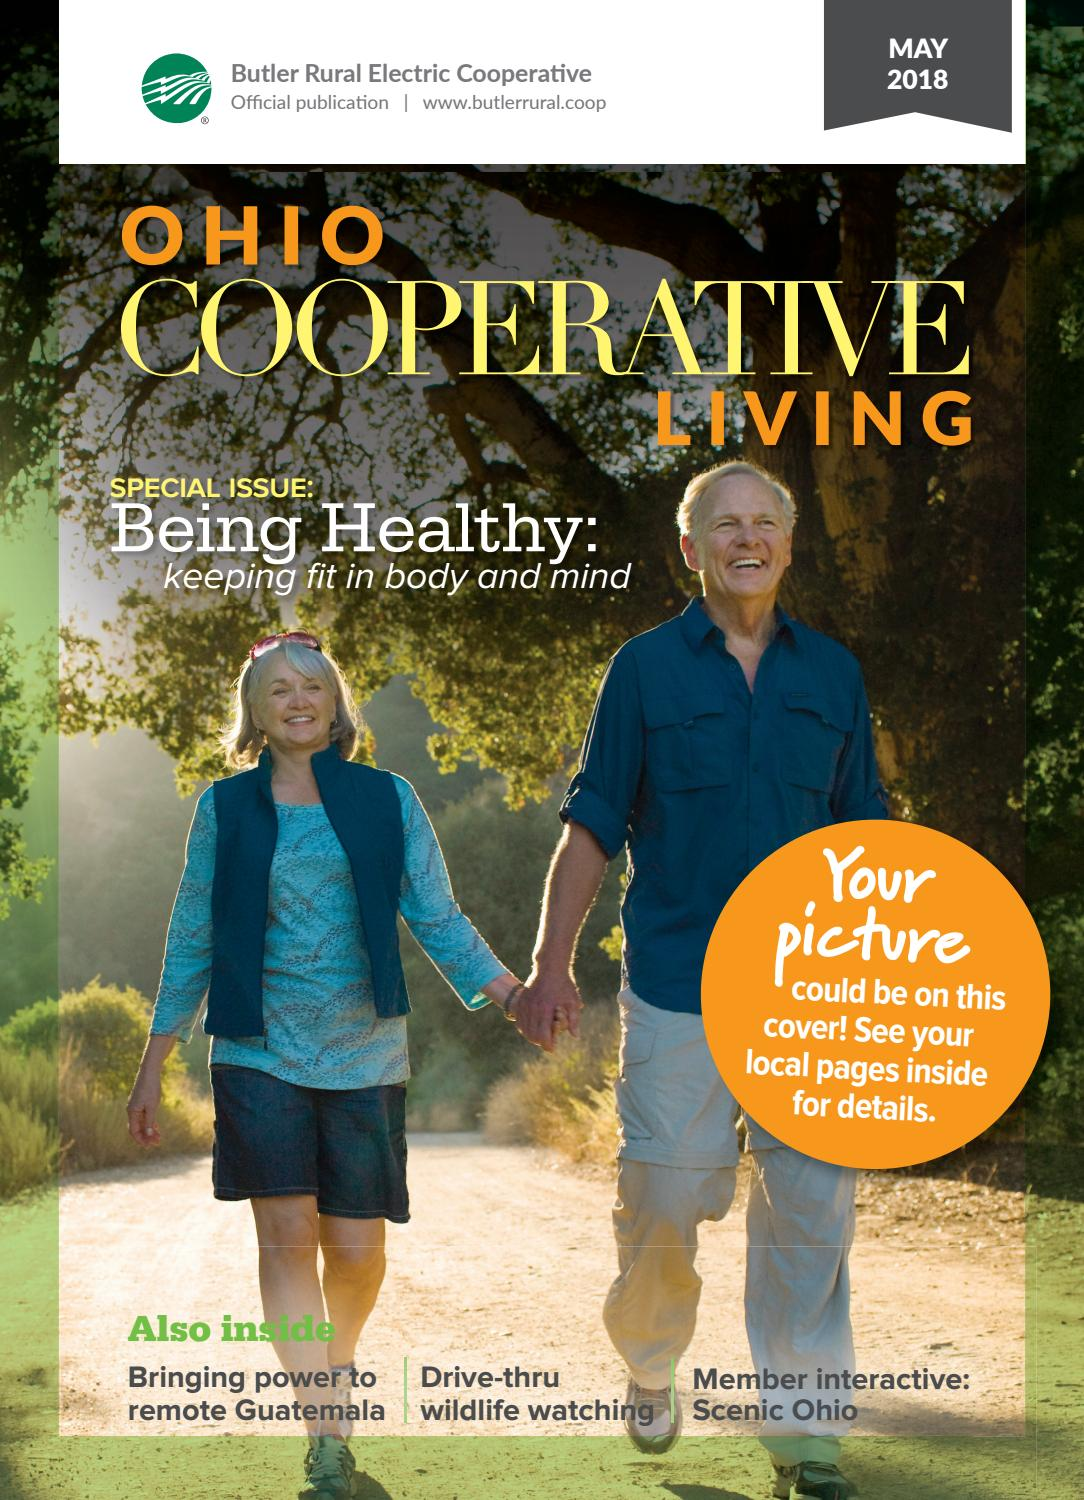 Ohio Cooperative Living - May 2018 - Butler by Ohio